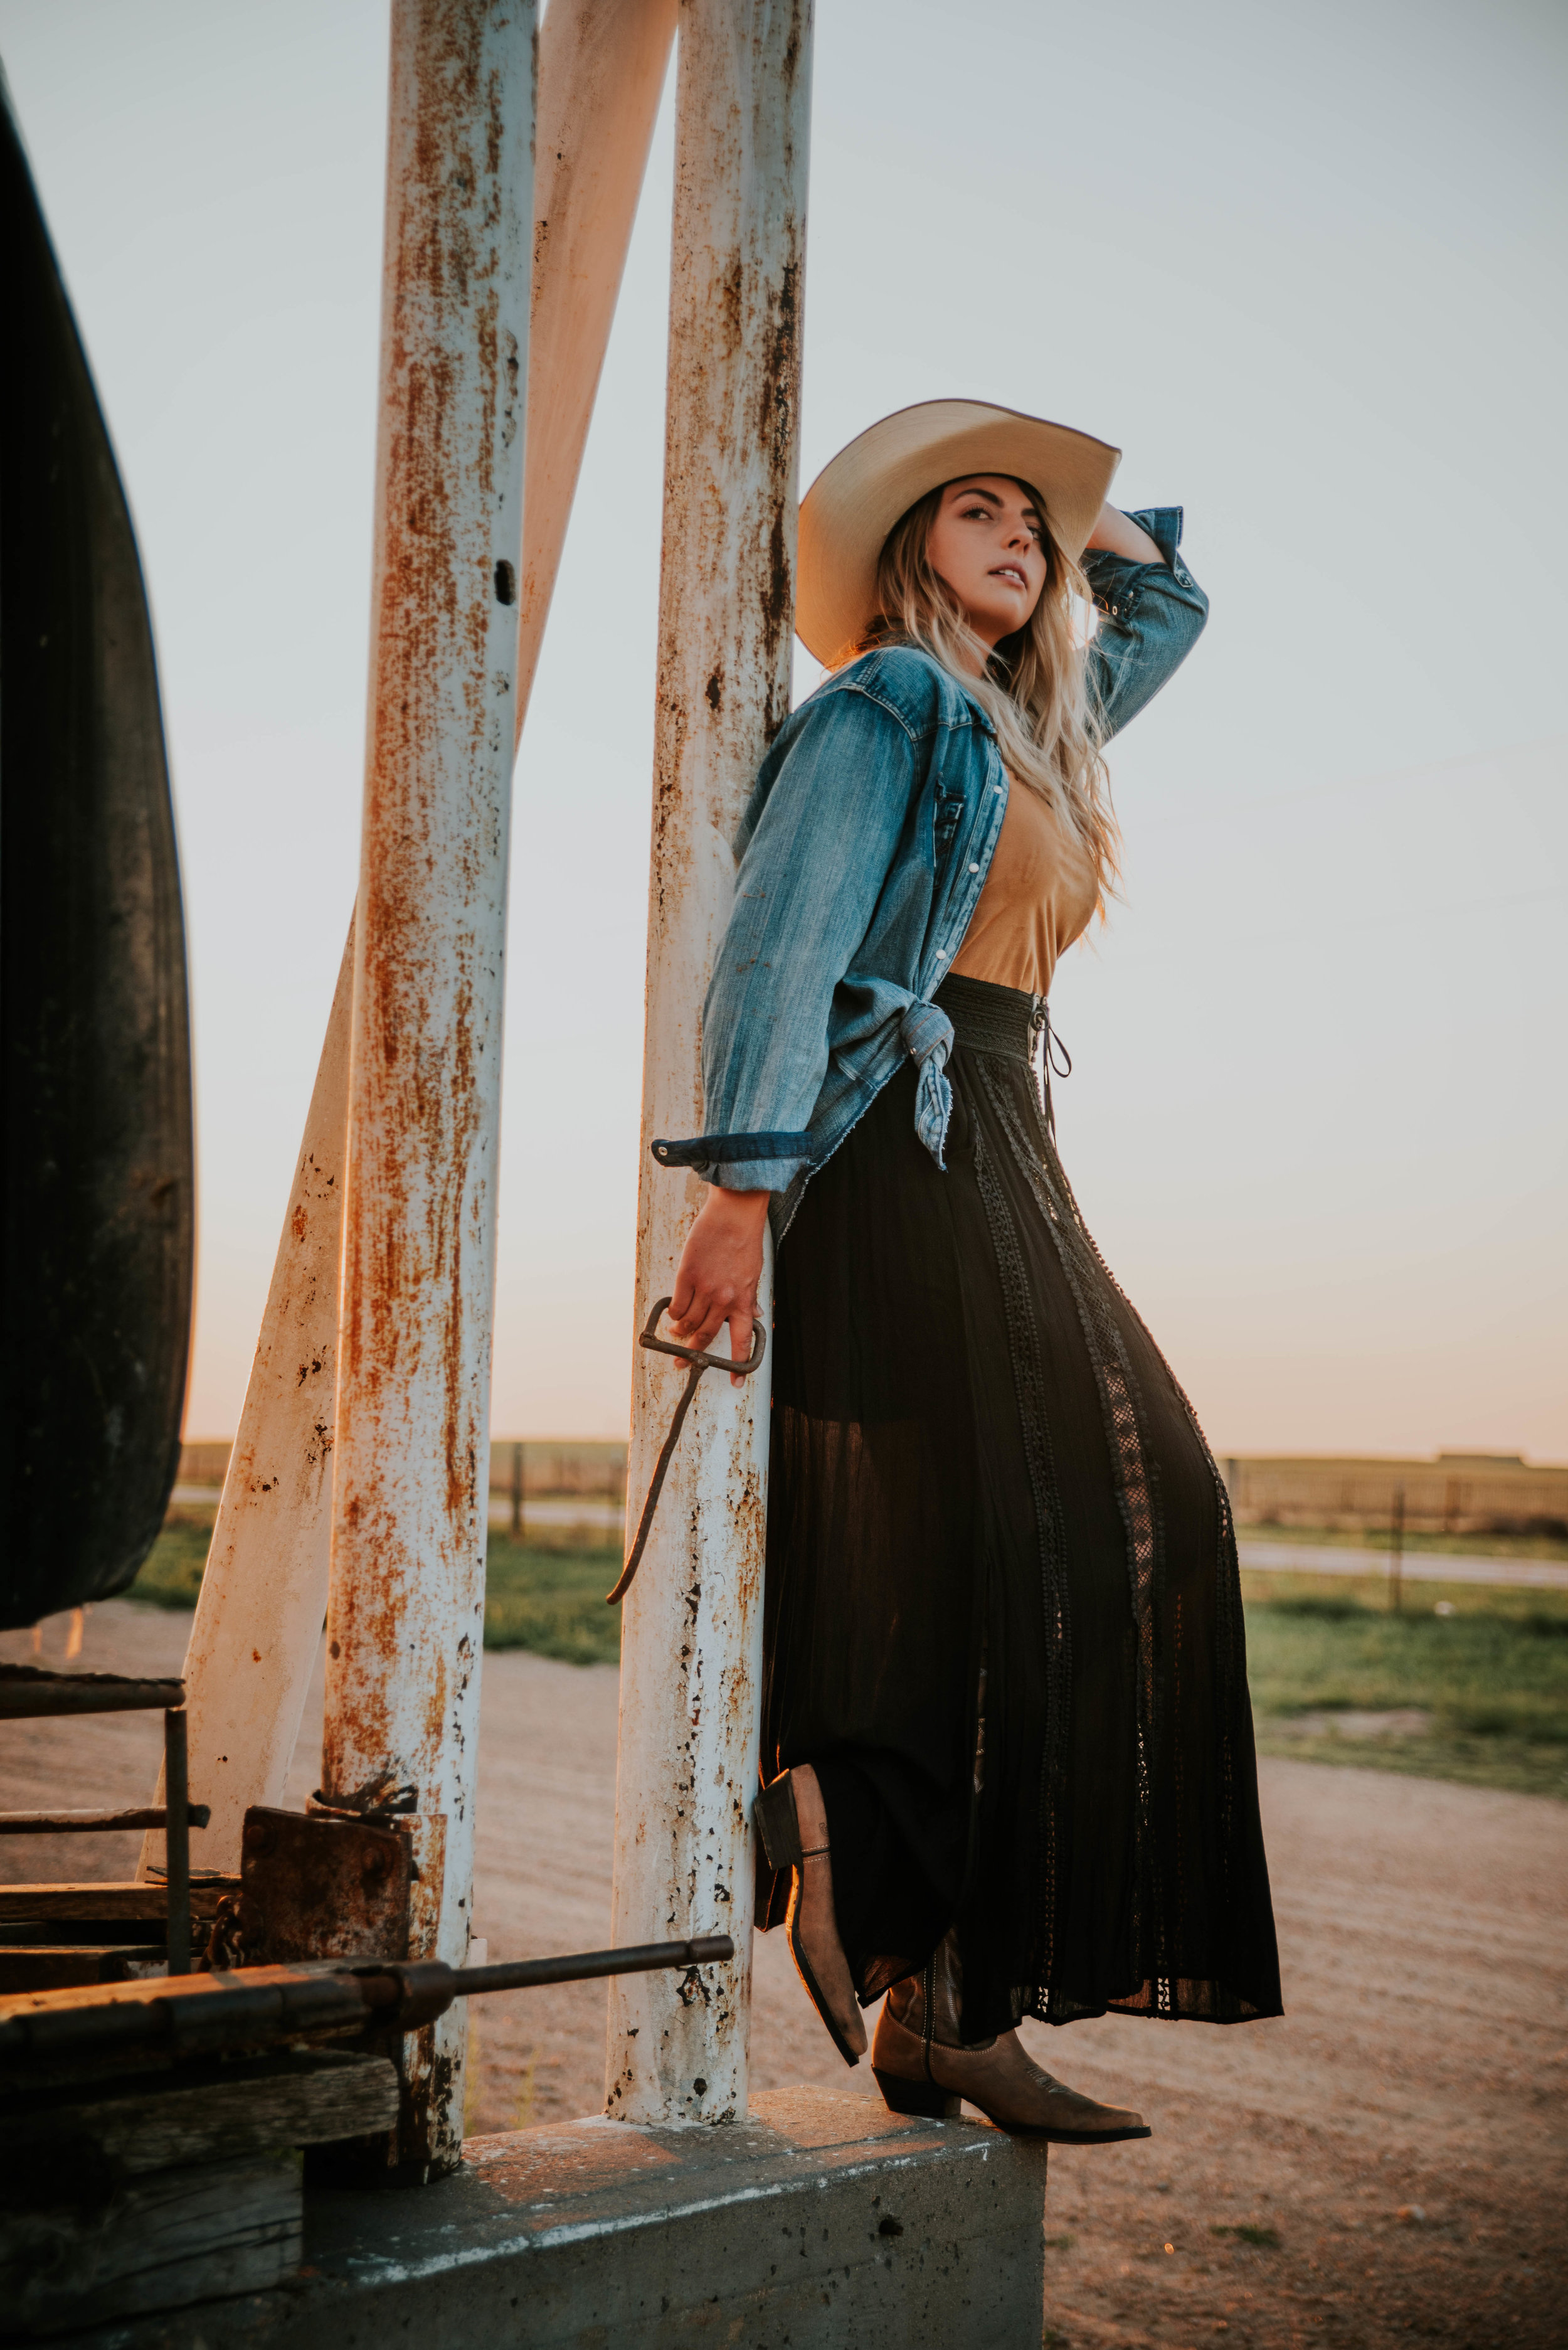 Miss. Miller's Photography | Colorado Photographer | Montana Photographer | Western Style | Western Photoshoot ideas | Western ideas | western pictures ideas | black skirt | brown cowgirl boots | Western Fashion Boots | Durango Dream Catcher